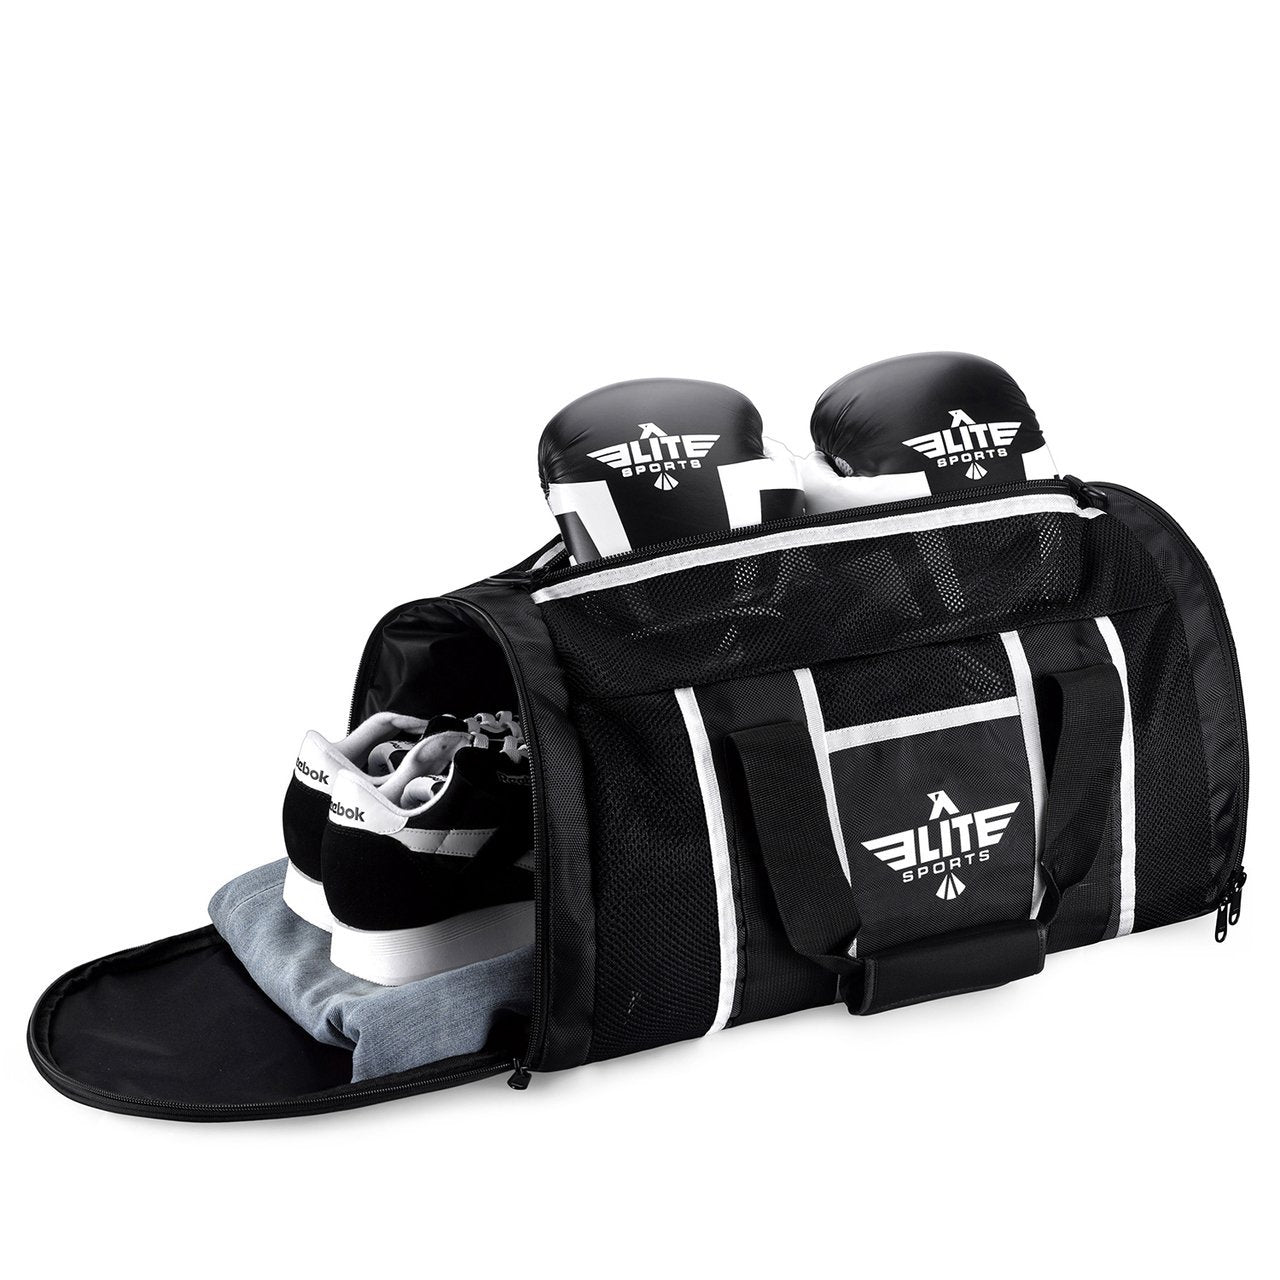 Load image into Gallery viewer, Elite Sports Mesh Black Large Judo Gear Gym Bag